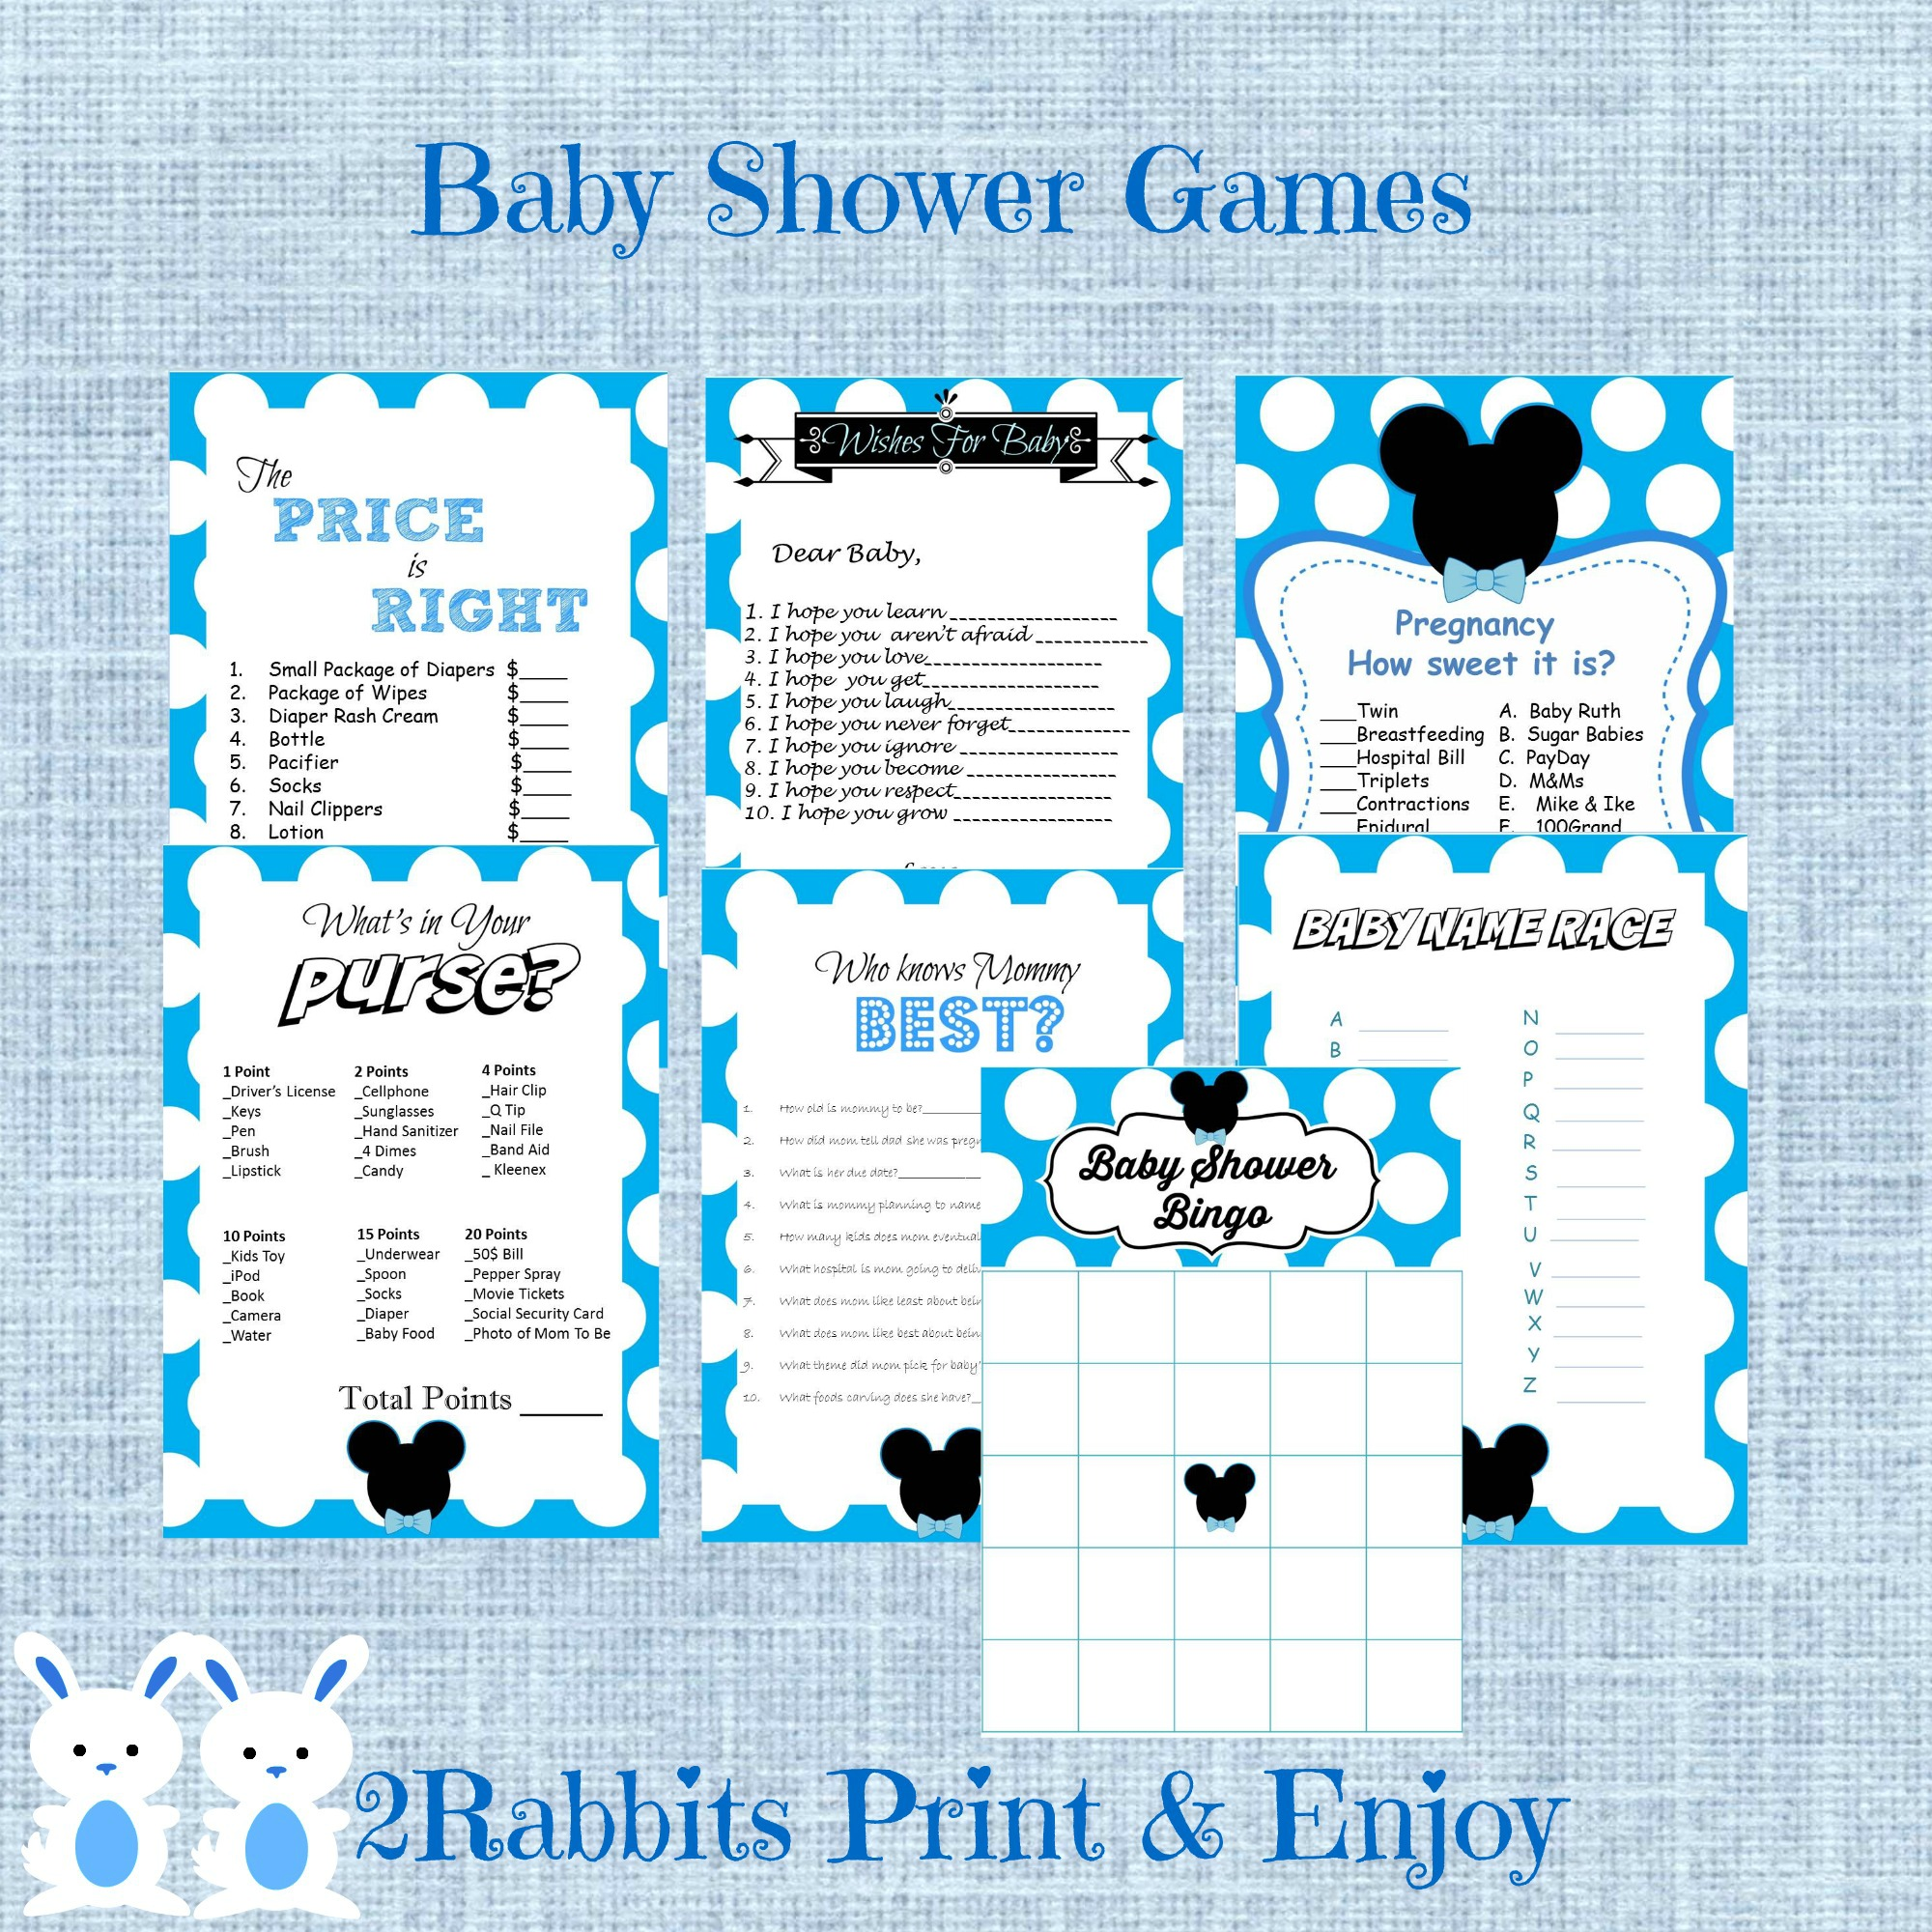 Mickey Mouse BabyShower Ideas My Practical Baby Shower Guide